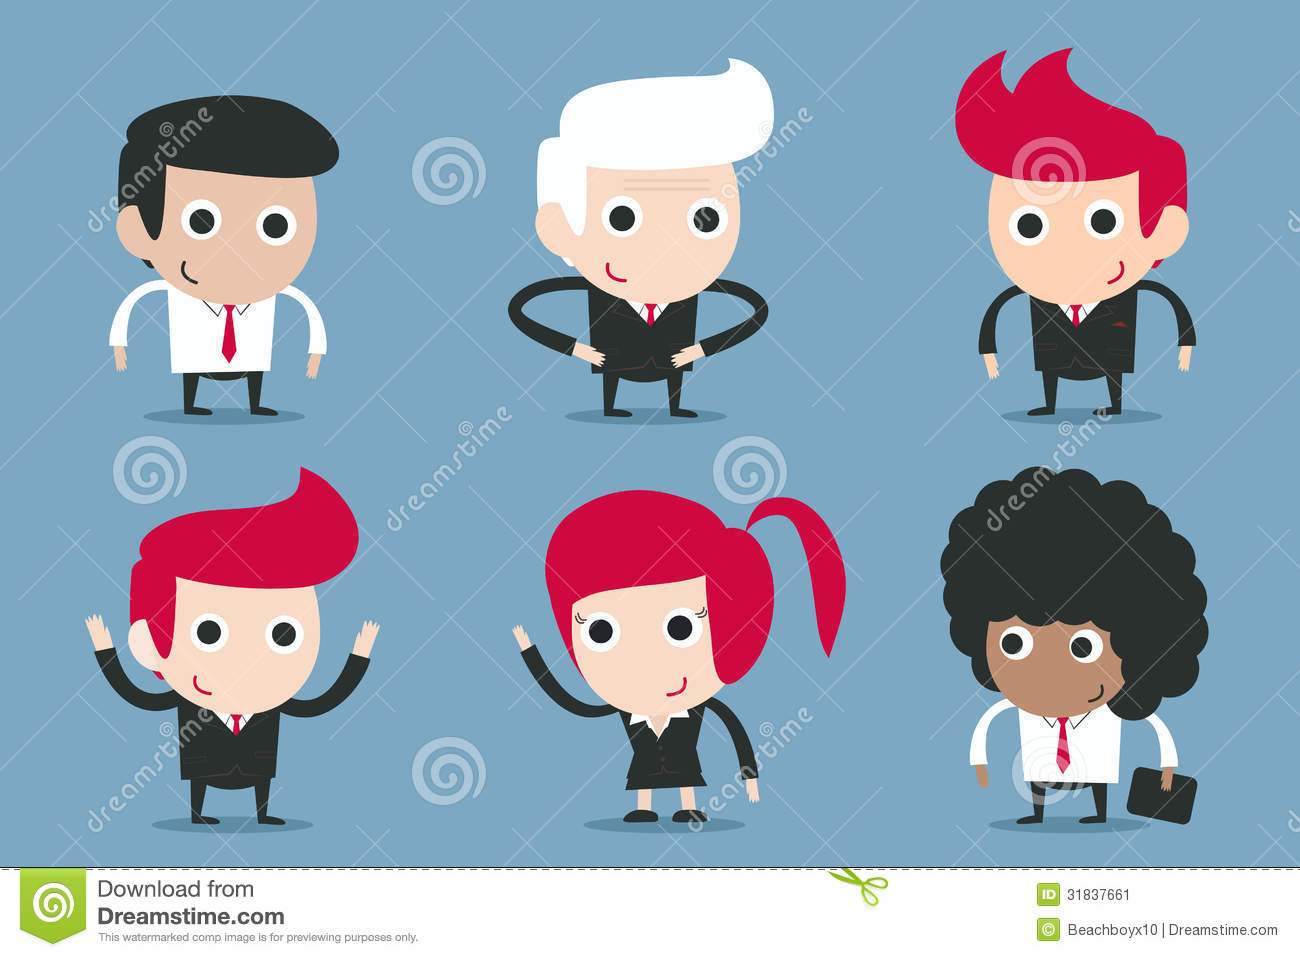 Cartoon Characters Design : Businessman cartoon stock illustration of